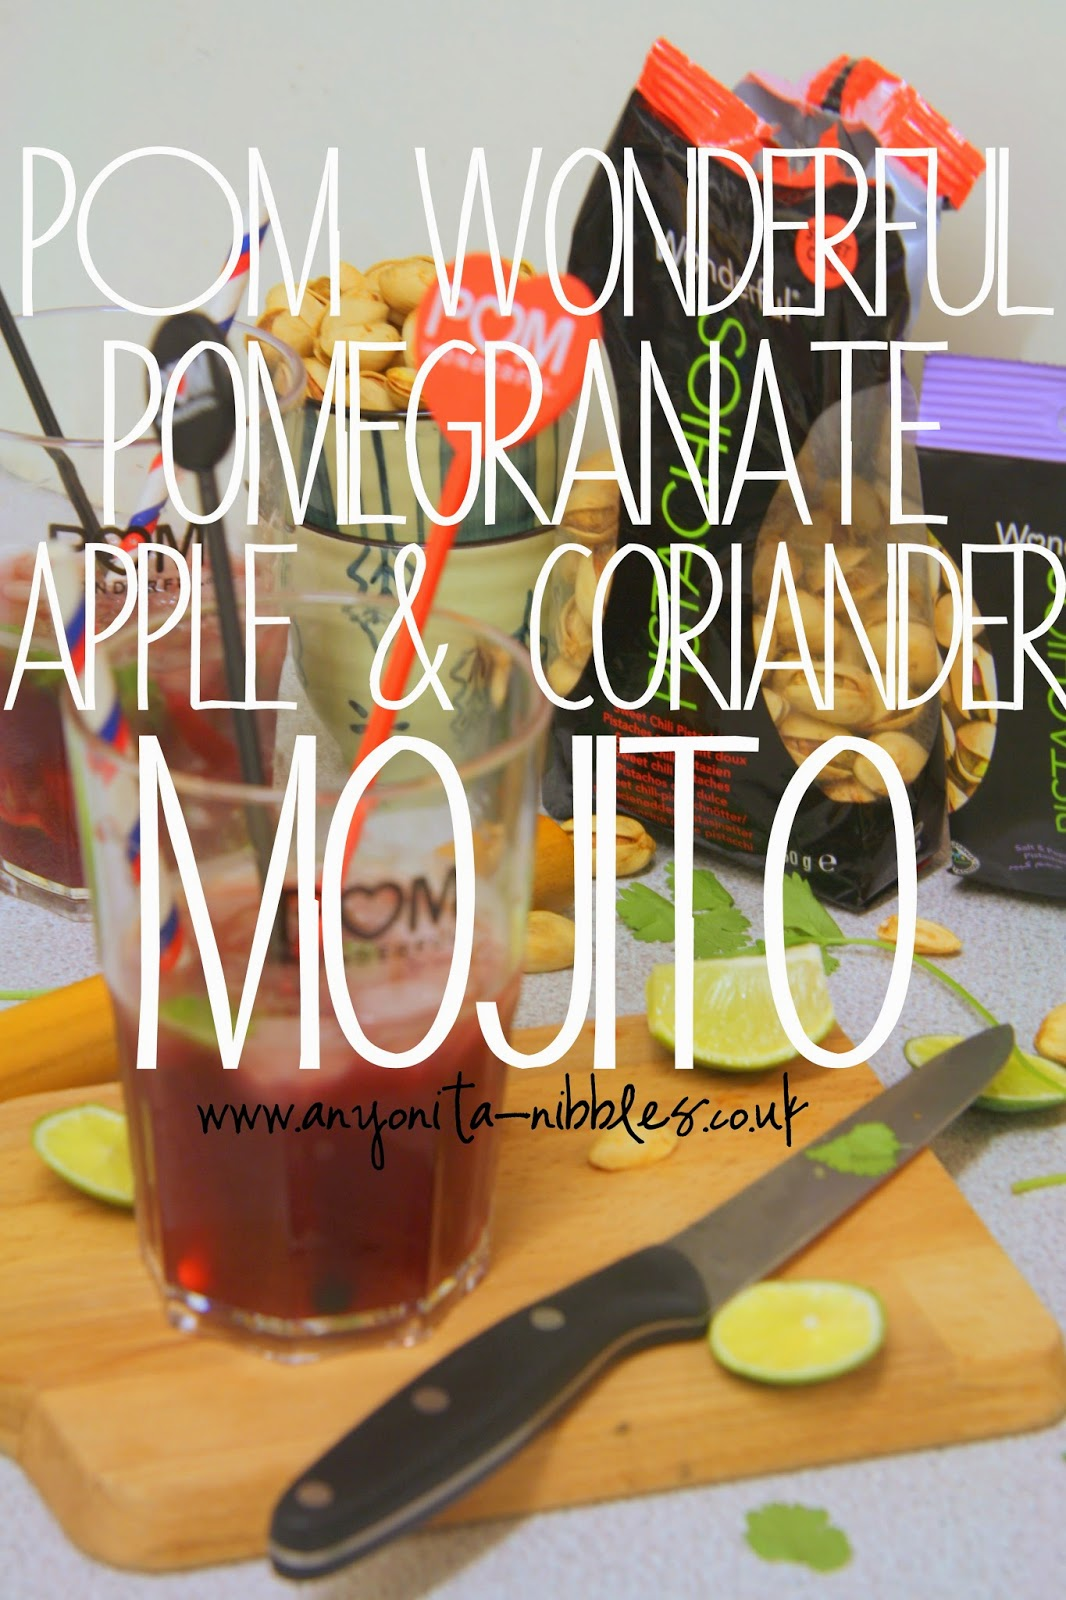 Pomegranate, Apple & Coriander Mojito from Anyonita Nibbles